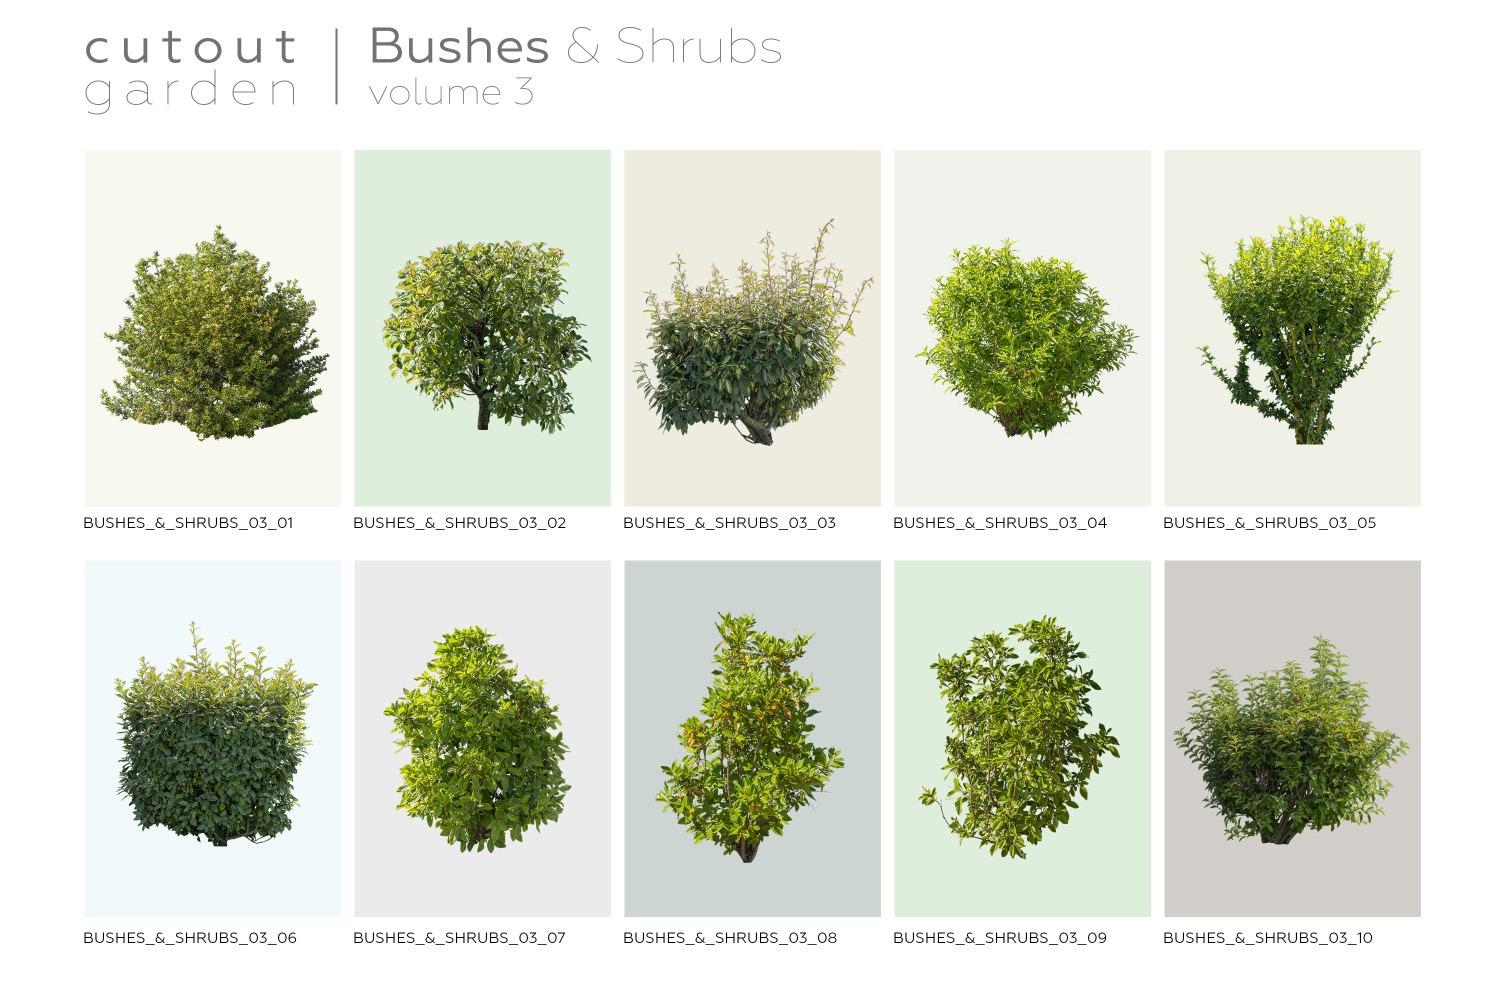 BUSHES & SHRUBS - Volume 3